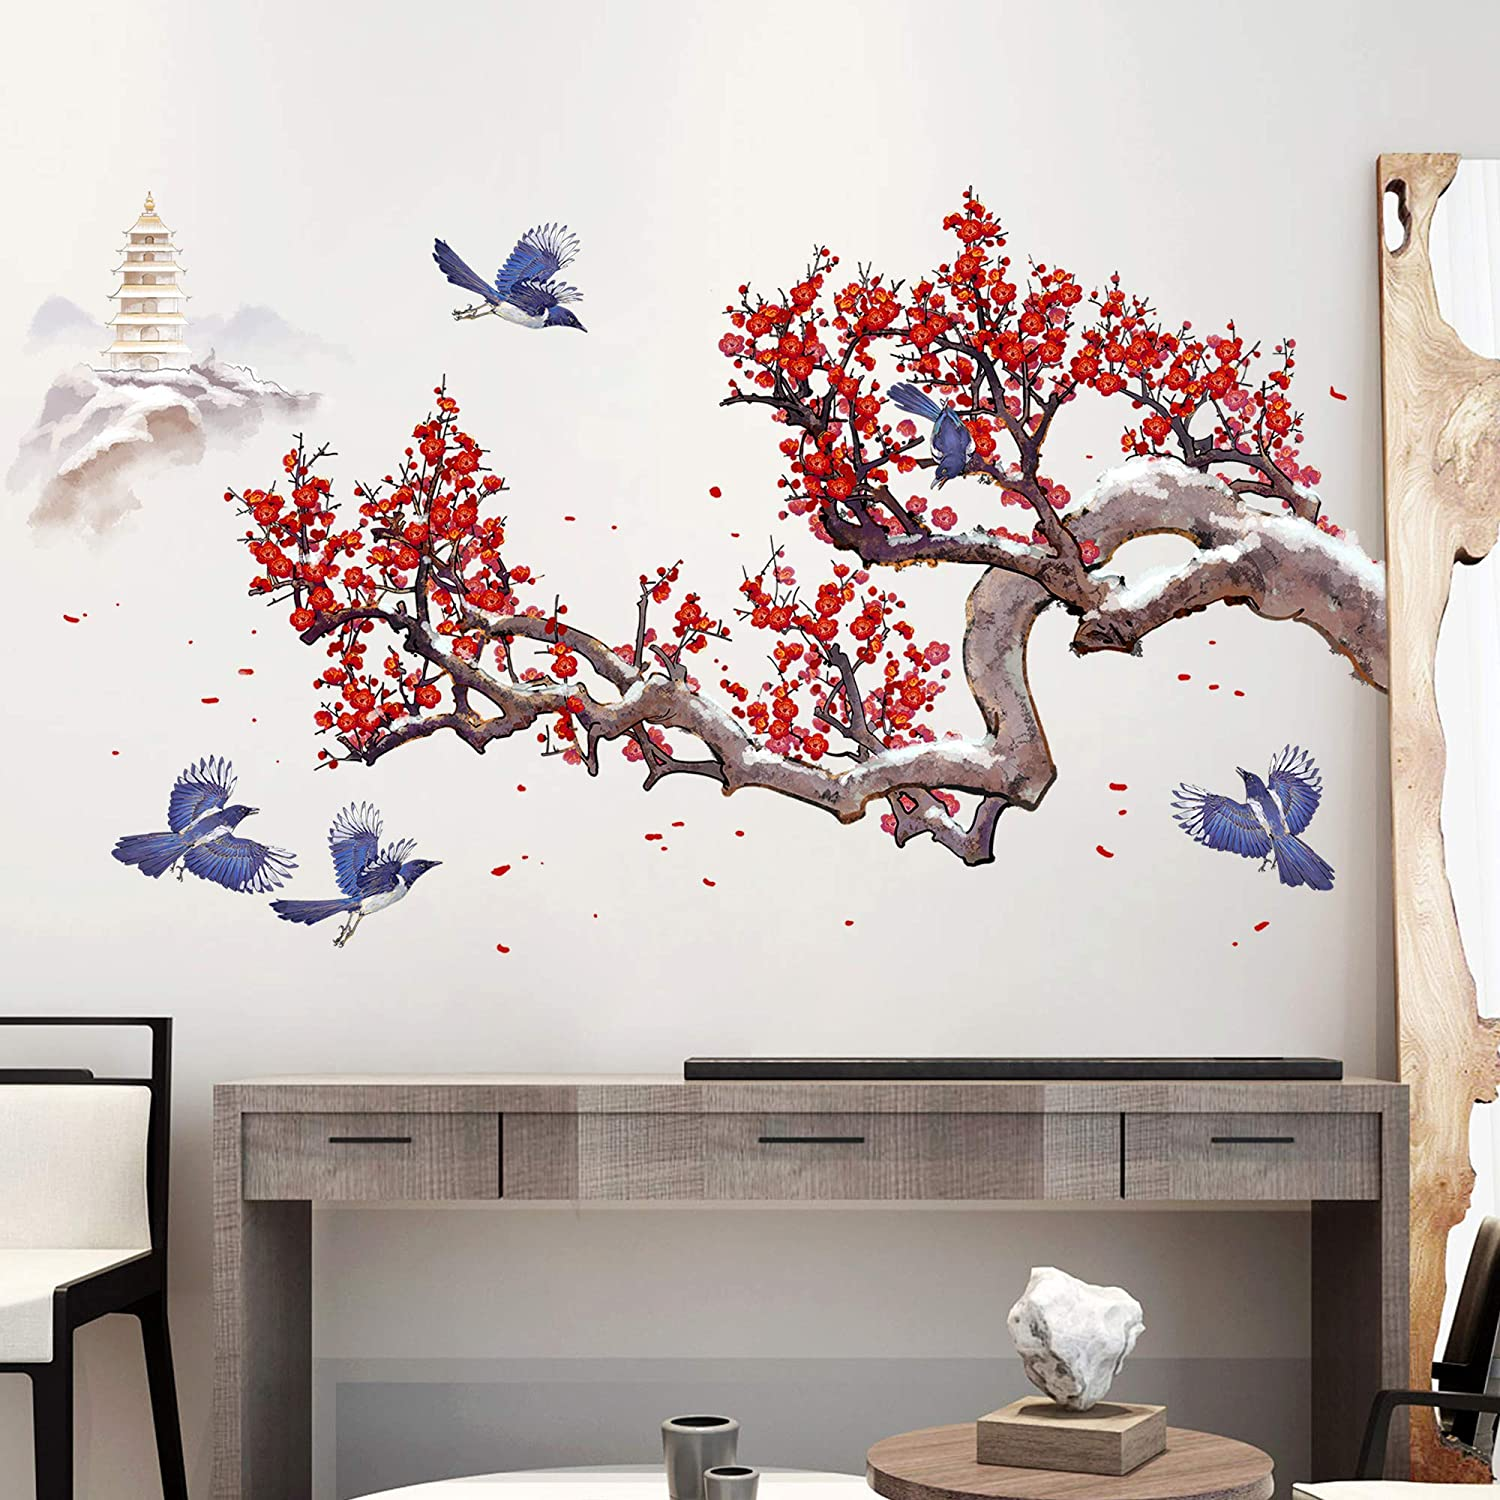 Amaonm Removable Giant Red Plum Blossom Black Tree Branches and Flying Birds Wall Decals 3D DIY Peel and Stick Home Decor Wall Sticker Wallpaper for Living Room Nursery Offices Kids Girls Bedroom Decoration